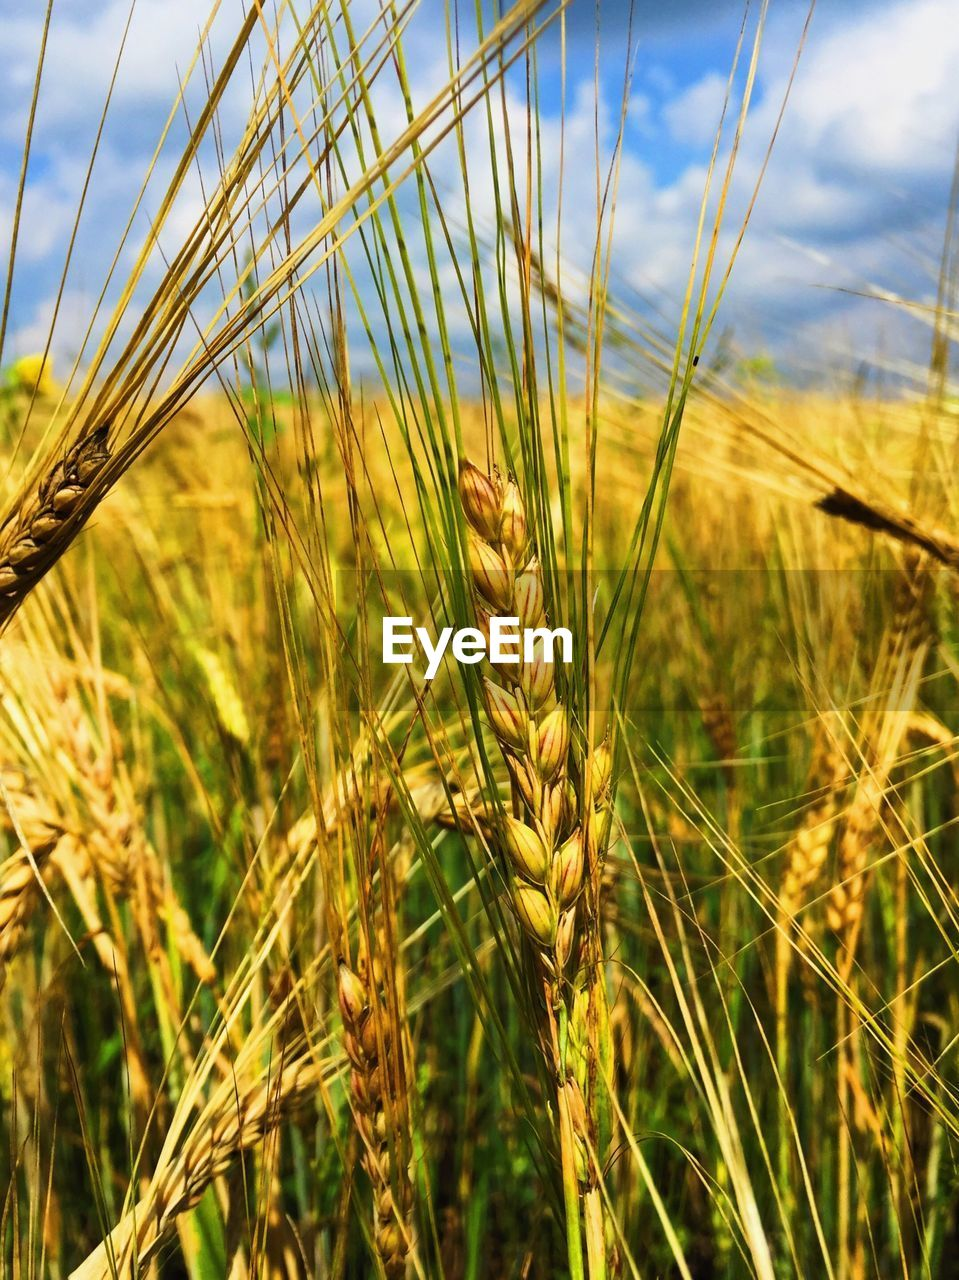 crop, plant, agriculture, cereal plant, growth, sky, land, nature, field, close-up, rural scene, wheat, landscape, farm, focus on foreground, beauty in nature, day, ear of wheat, tranquility, no people, outdoors, stalk, plantation